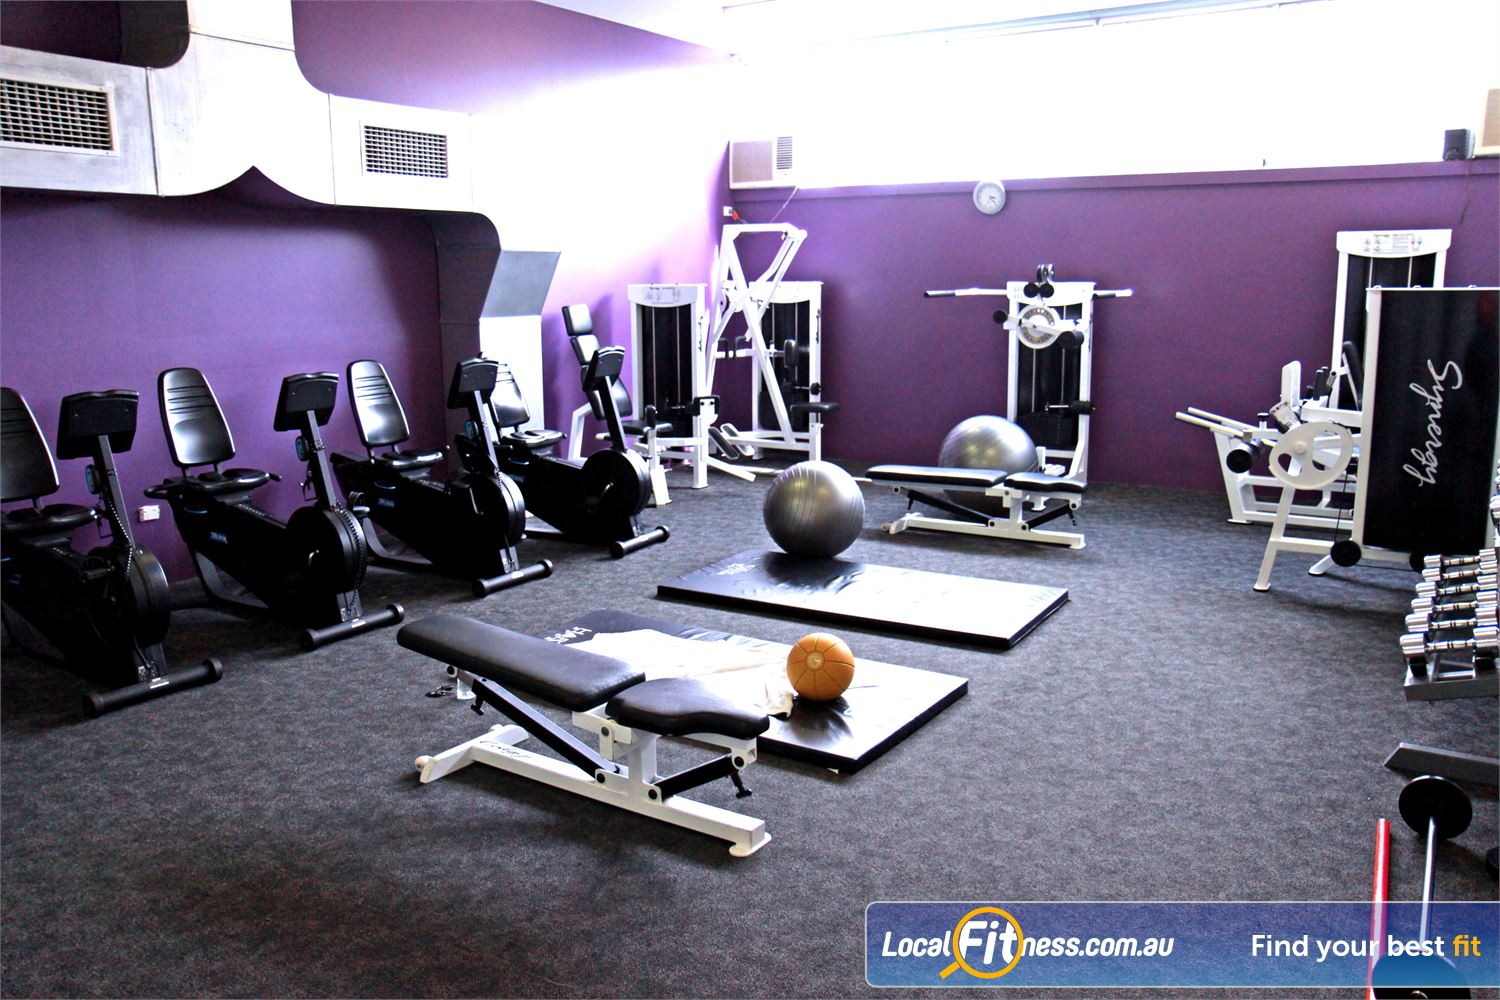 Goodlife Health Clubs Near Bulimba The private and uninterrupted Morningside ladies gym.